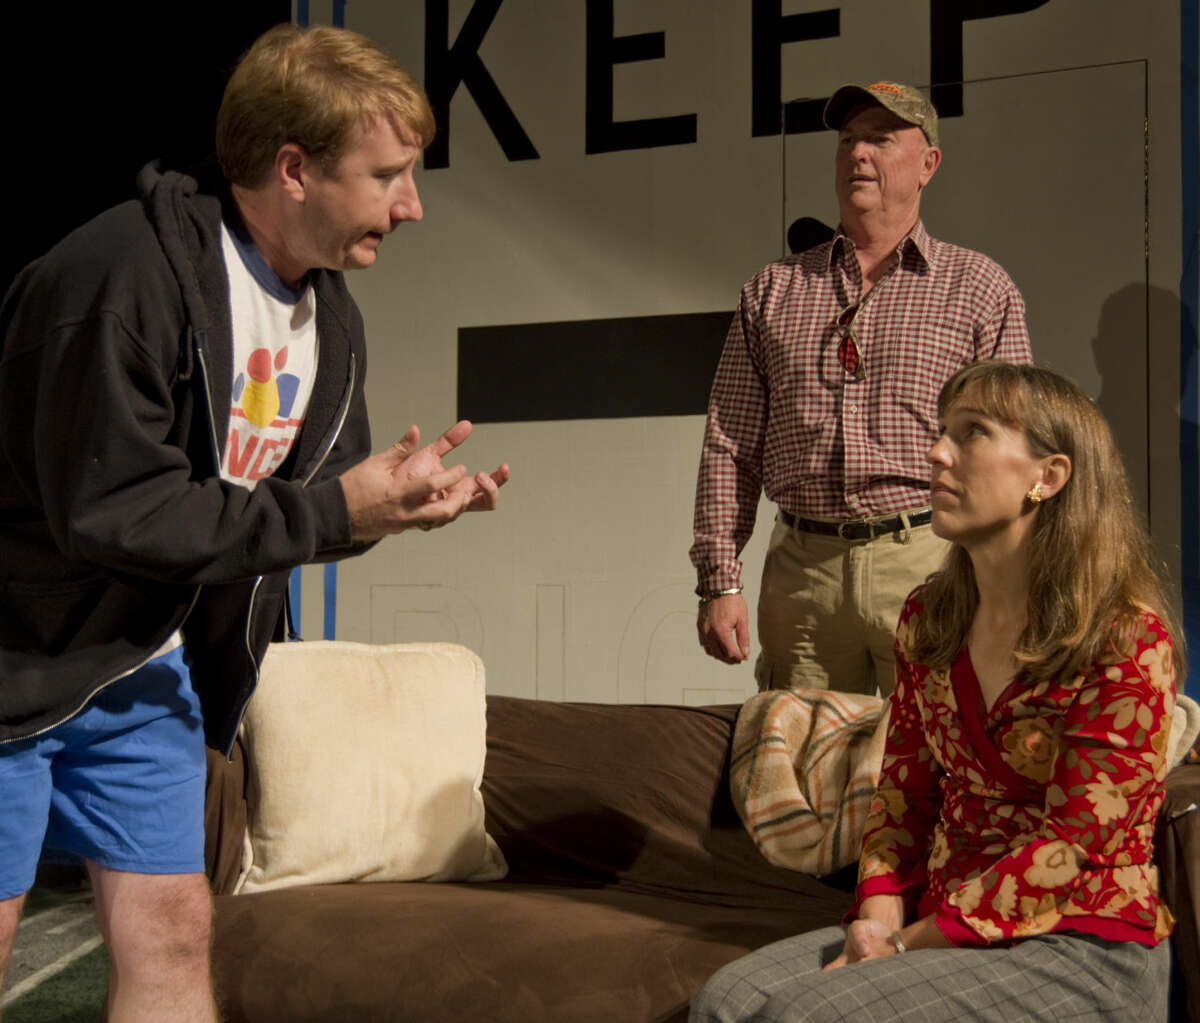 Jason Kelliher as Chris, pleads with his parents, Pam Keel as Becky and Michael Fields as Joe in MCT's production of 'Becky's New Car.'